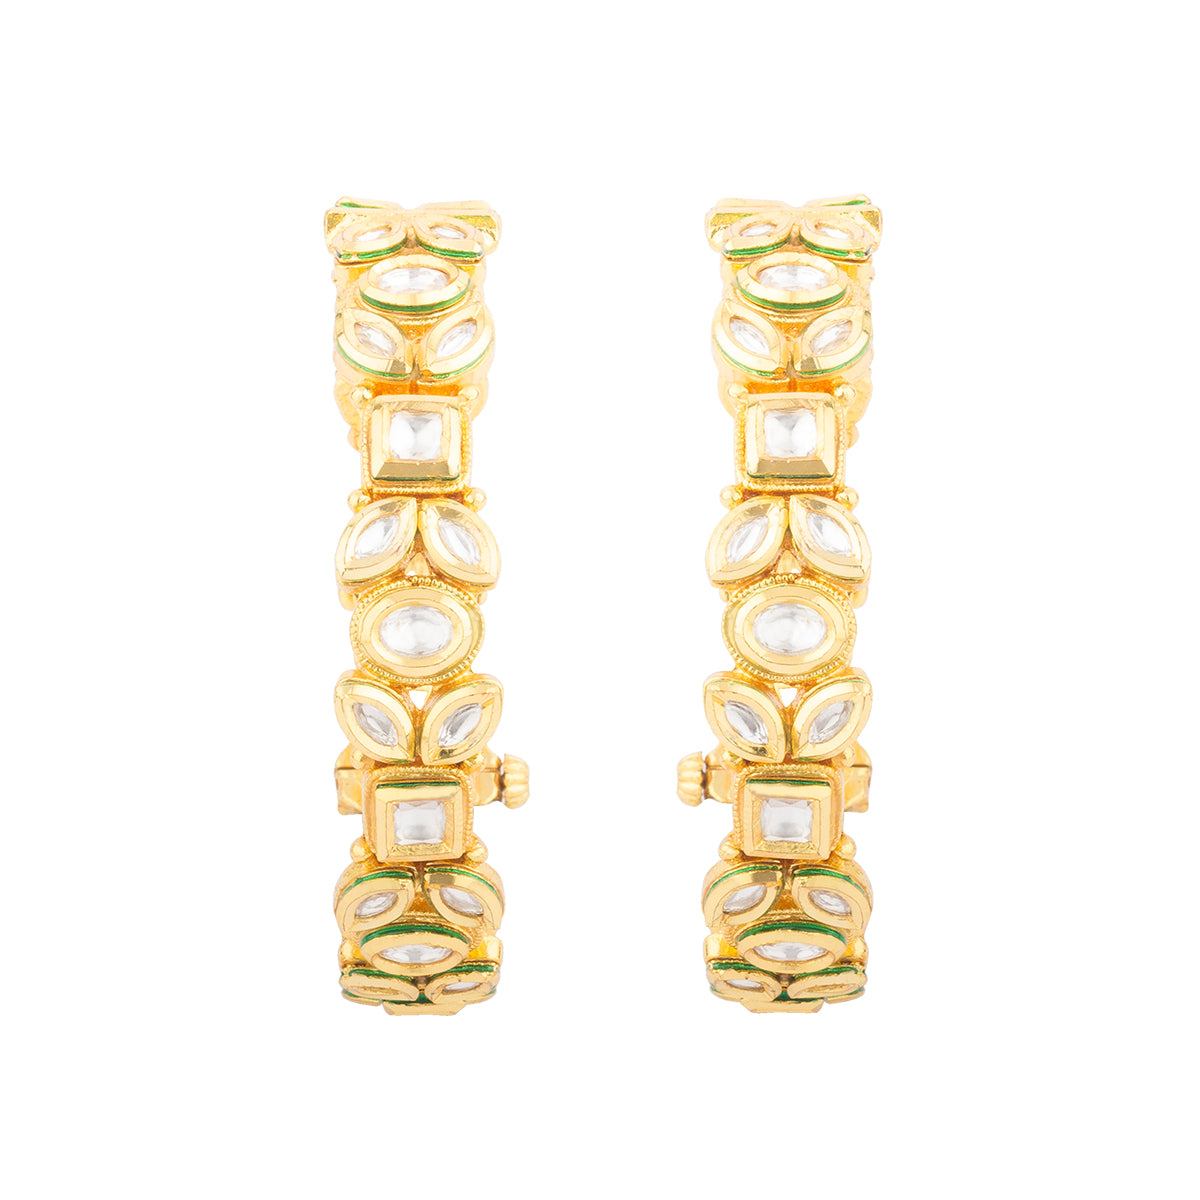 These pair of kadas are finished with uncut stones in floral  pattern giving it a unique look.